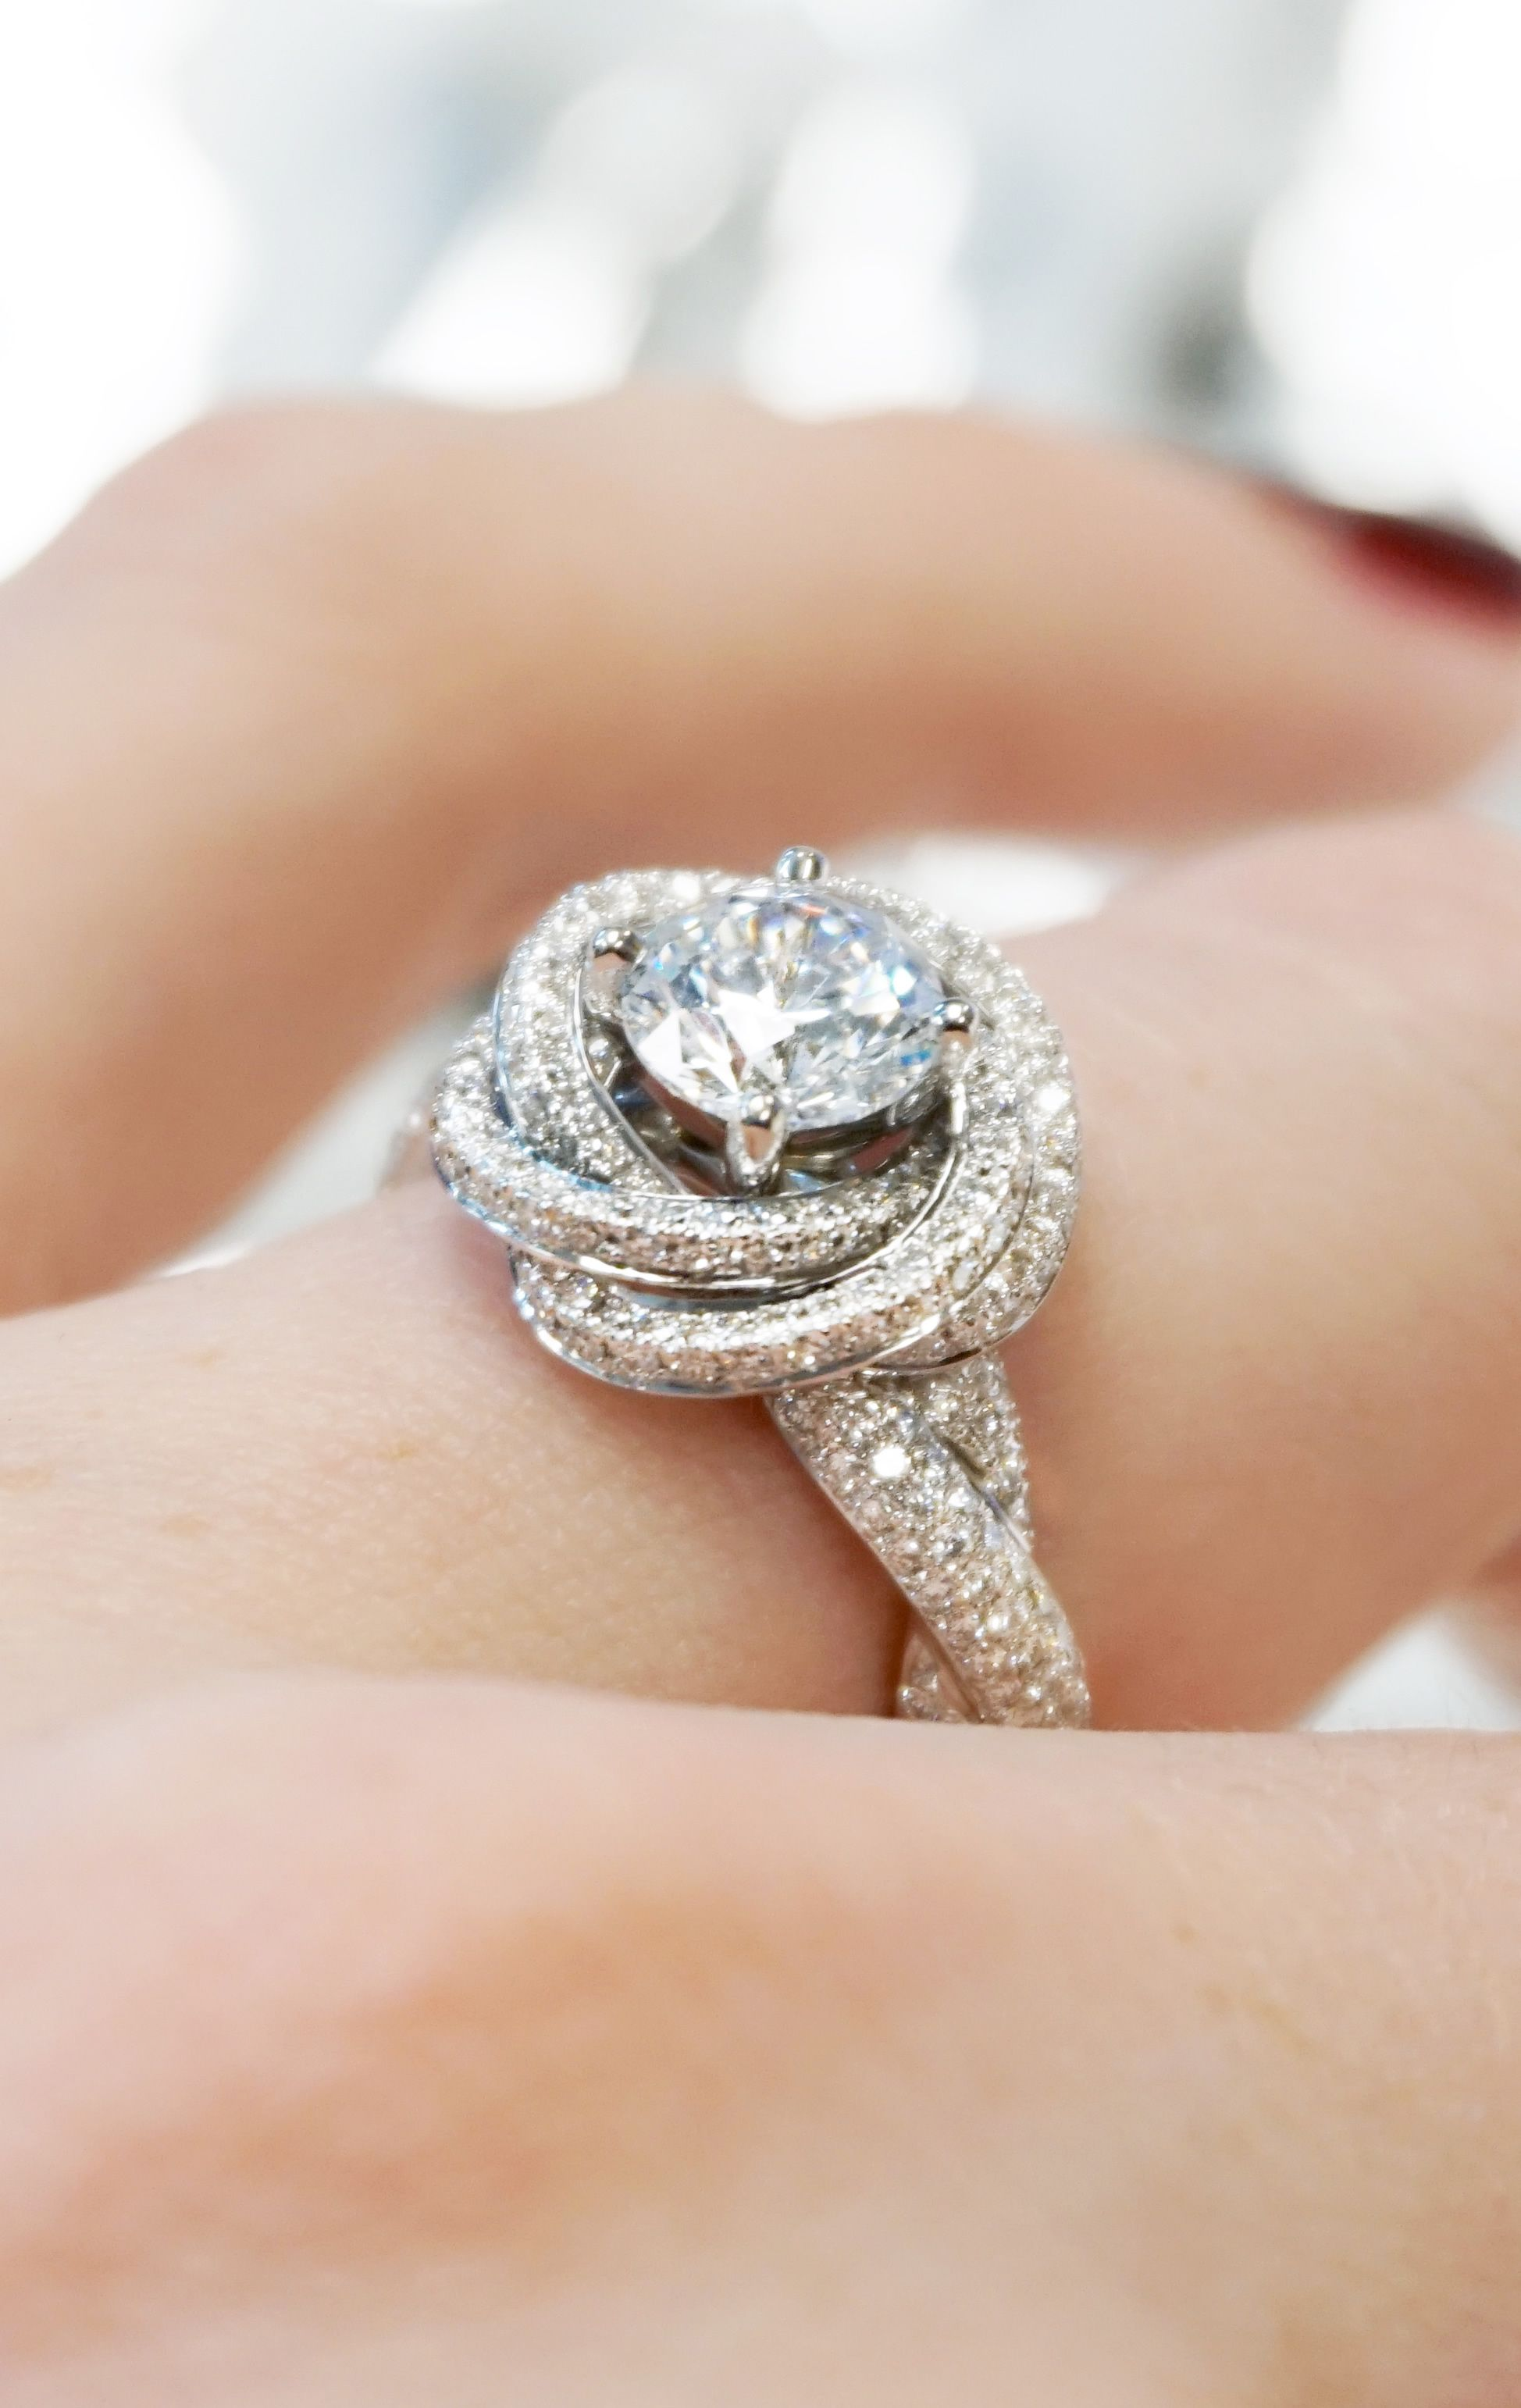 pin ever engagement royalt the rings might just be collection style glamorous perfection tacori these no prettiest